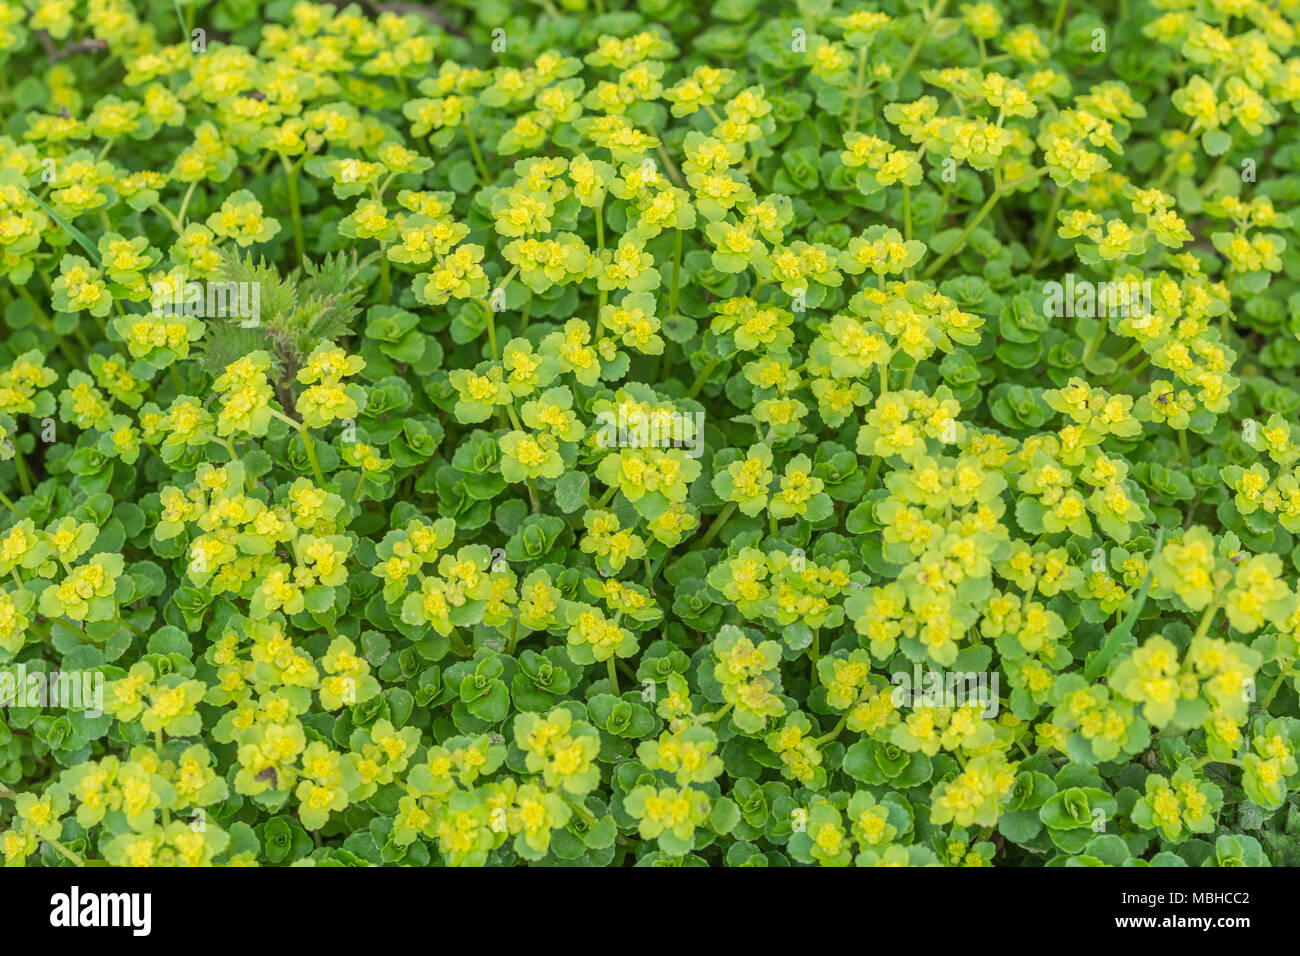 Mass of flowering (springtime) Opposite-Leaved Golden Saxifrage - a water-loving plant which may be eaten and is foraged. - Stock Image